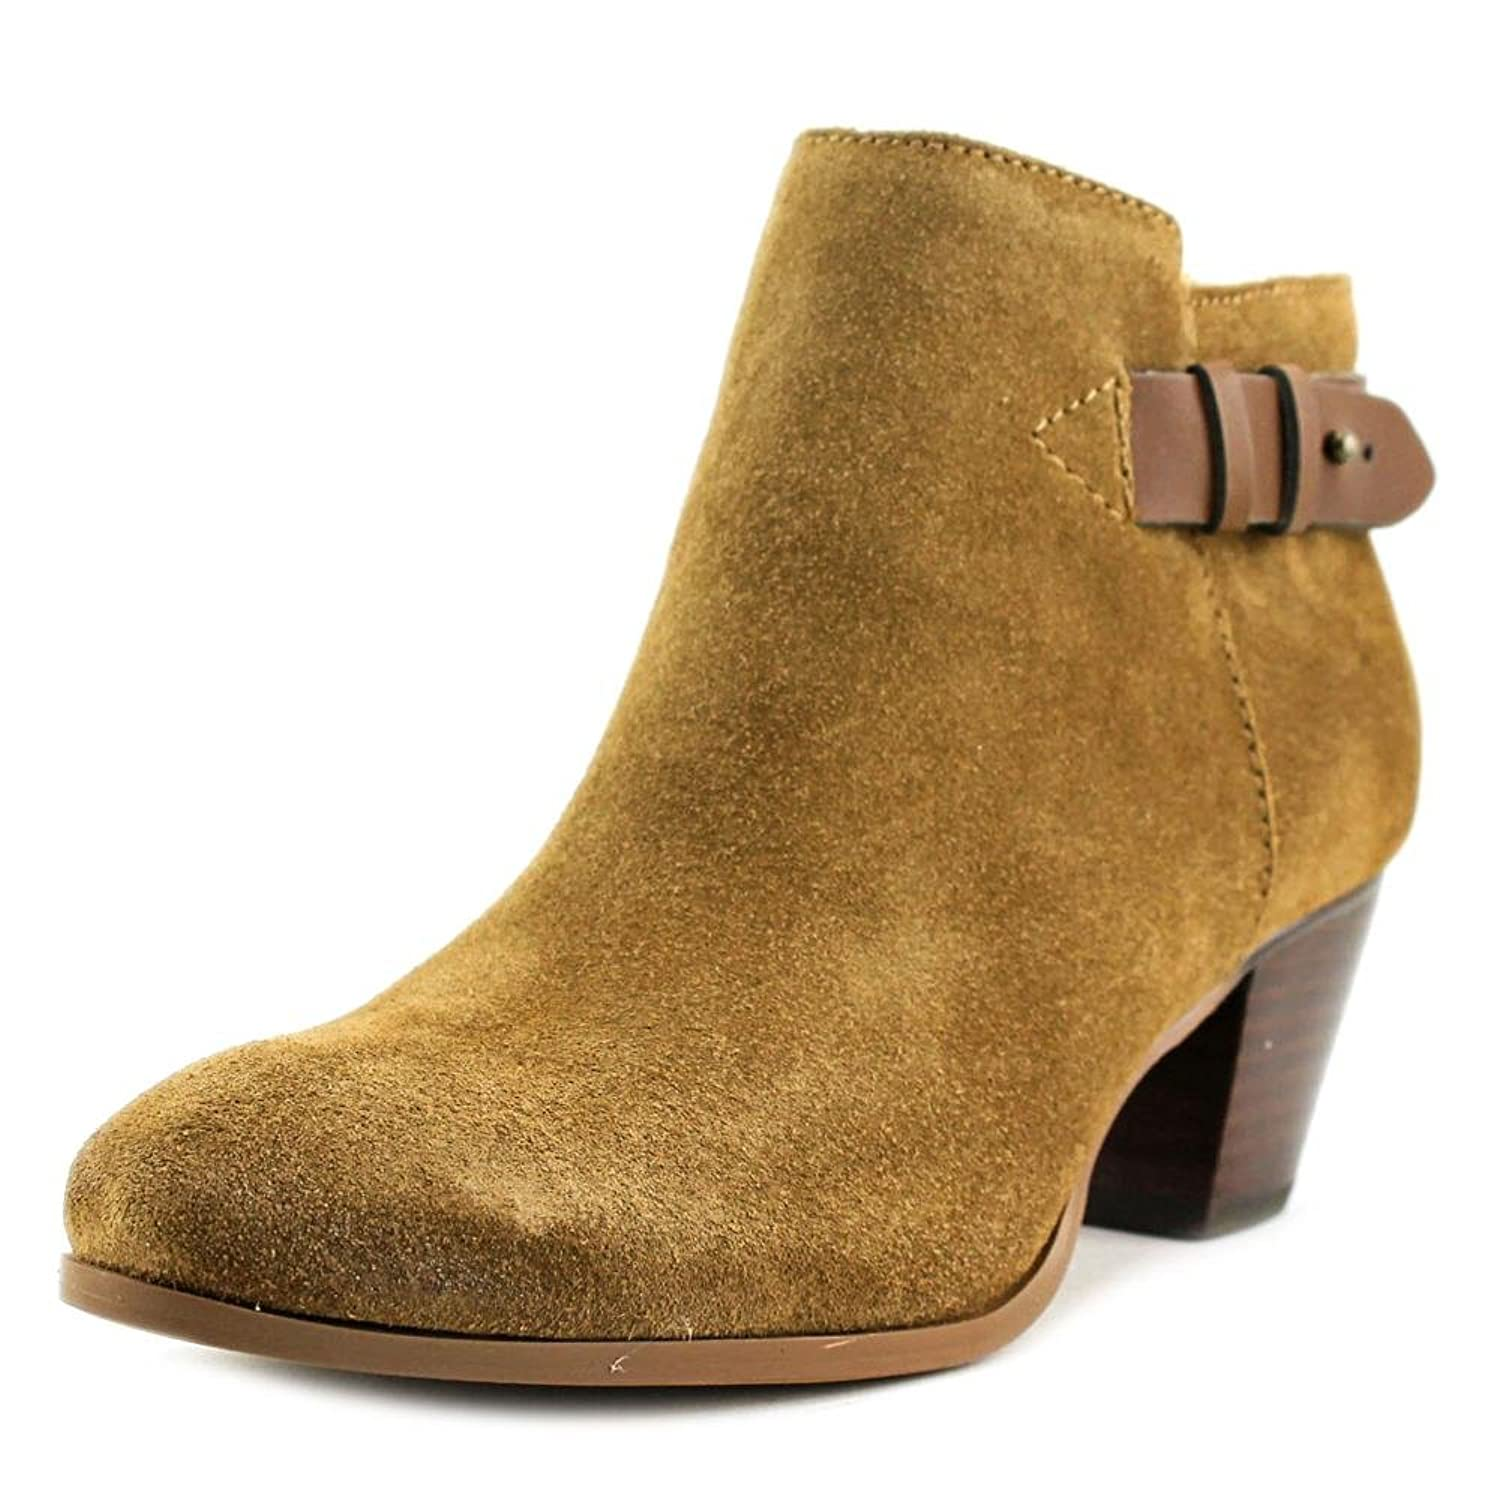 Guess Denice Round Toe Suede Bootie